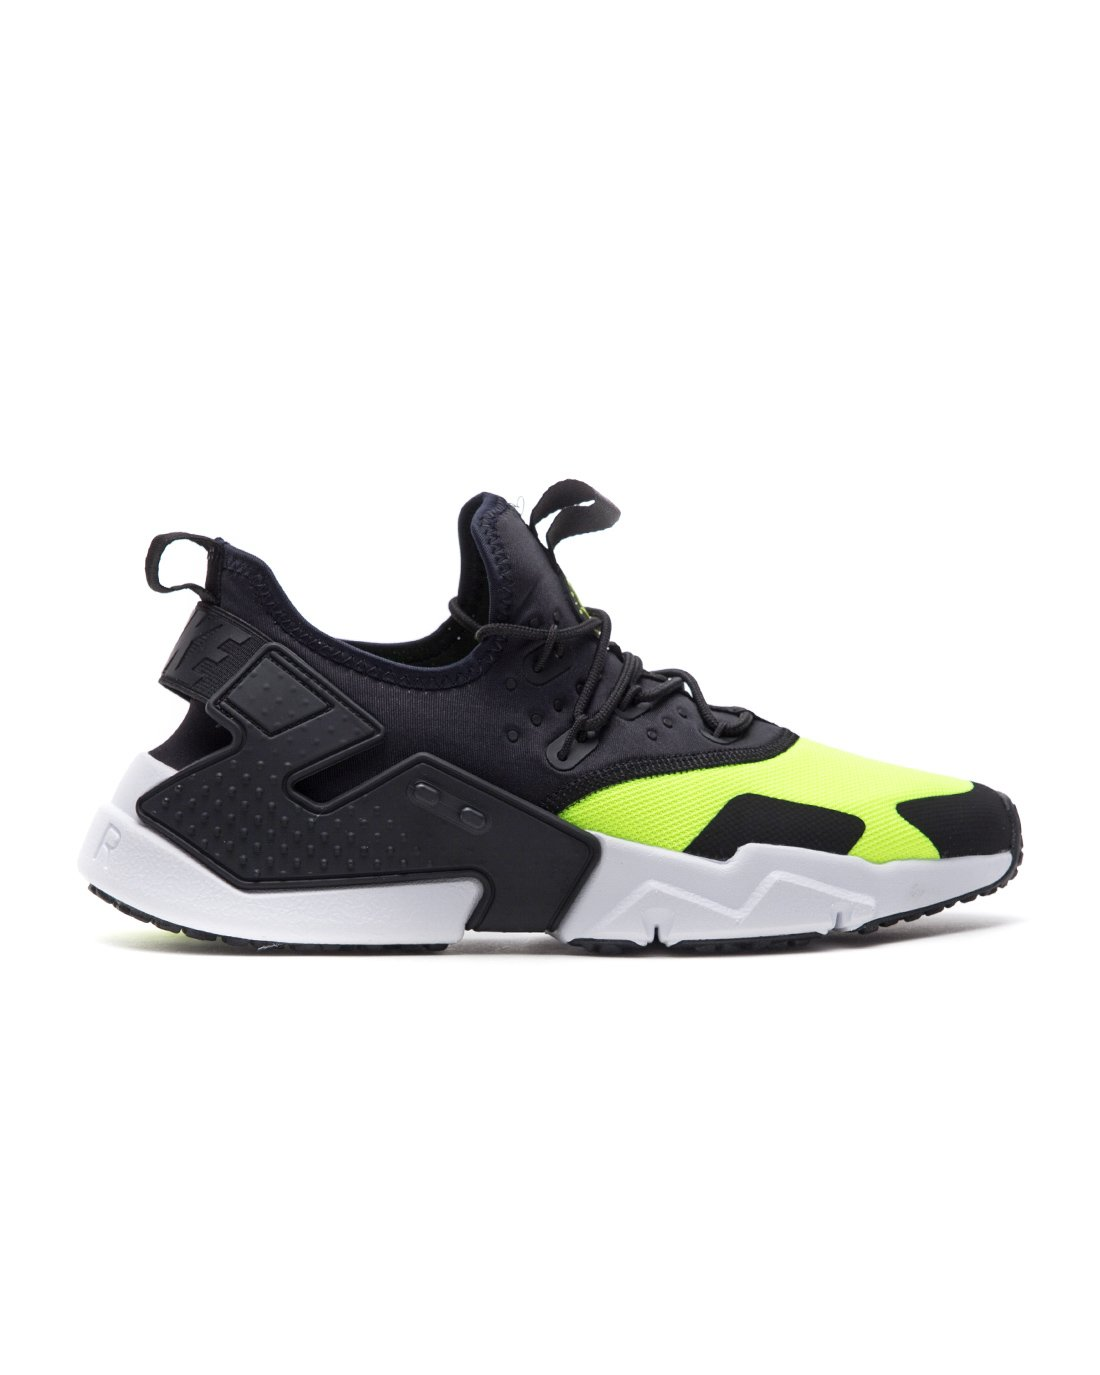 on sale cb090 252c1 Galleon - NIKE Men s Air Huarache Drift Volt Black White AH7334-700 (Size   8)